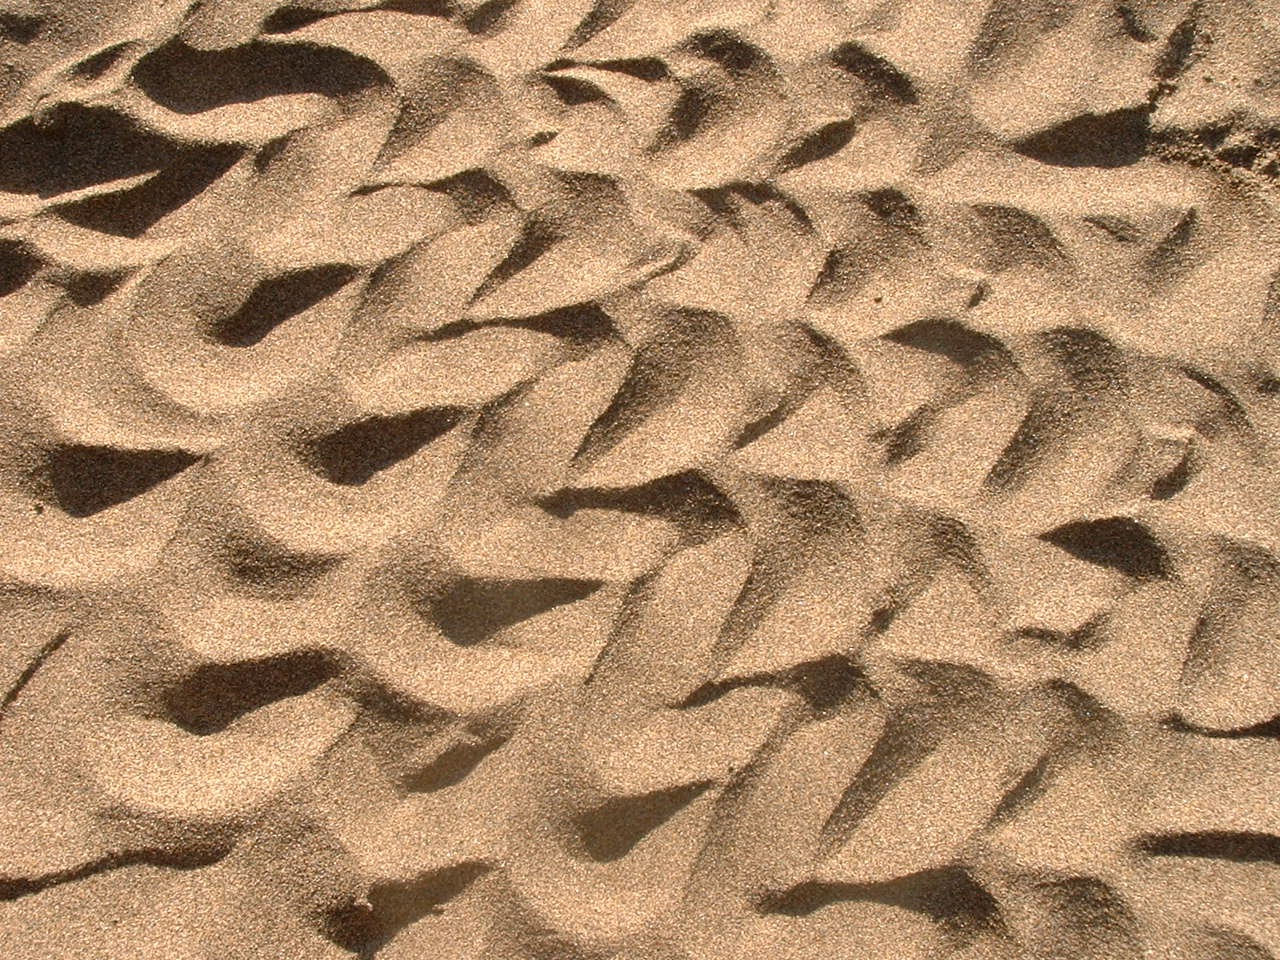 sand, texture, download